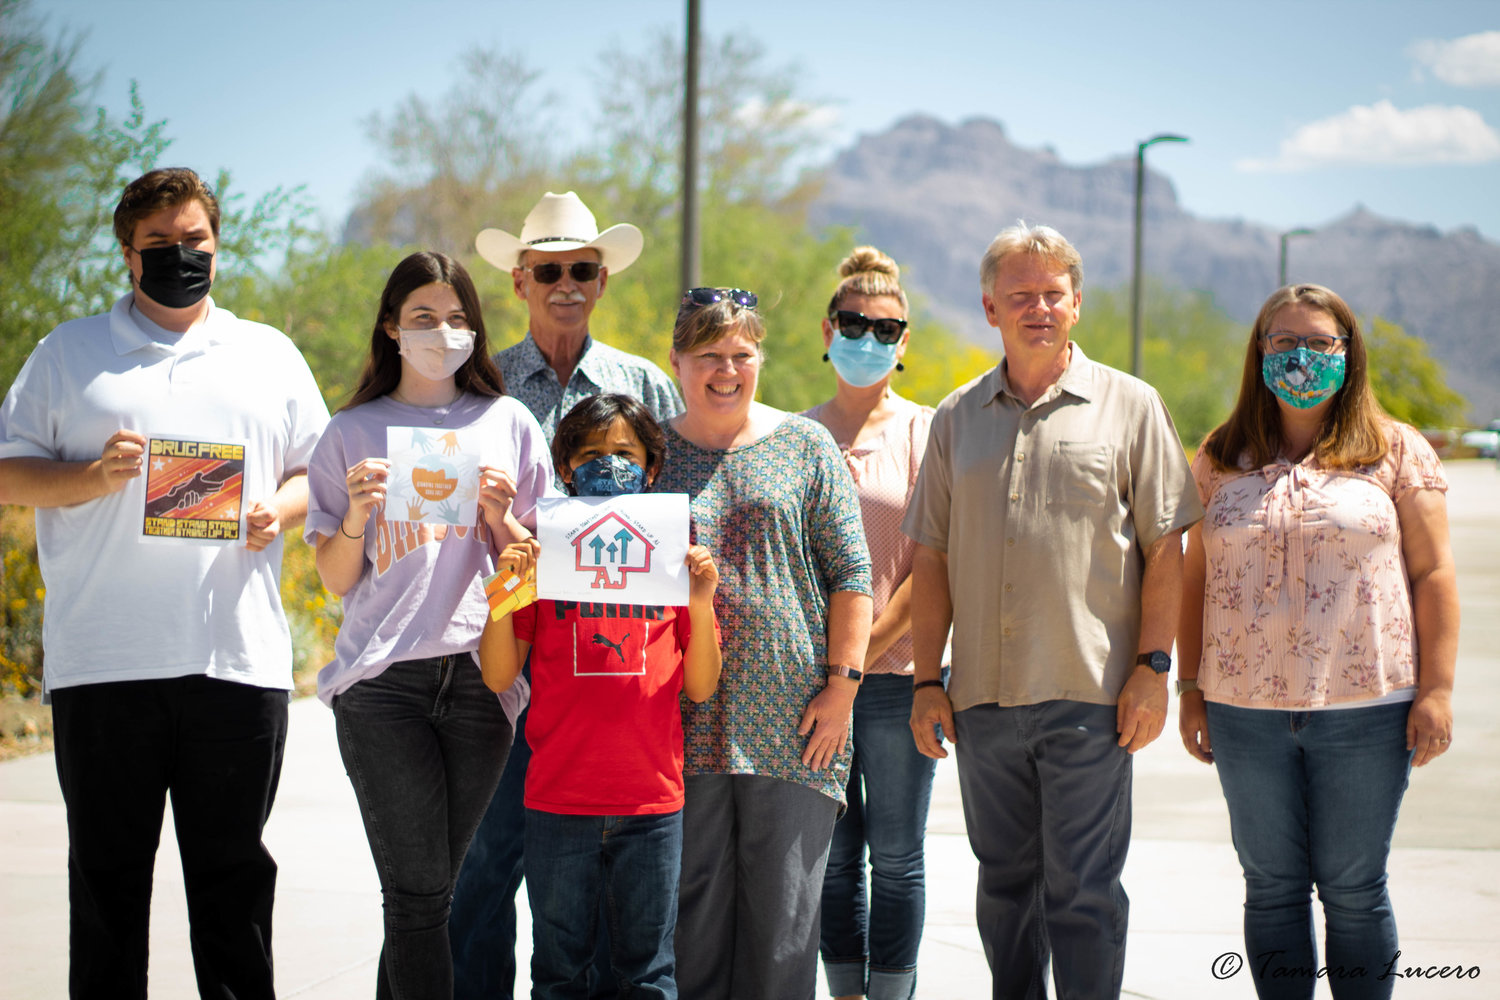 From left are Gabriel (Xander) Embury; Kylee McDonald; Apache Junction Mayor Chip Wilson; Shelly Verley, StandUp AJ's coordinator; Pat Smith, principal of Desert Vista Elementary School and a member of StandUP AJ; Mike Harding, pastor of Love Gospel Church, who was instrumental in getting the contest and luncheon accomplished; Miriam Wilson, a school teacher; and in the front is Quetzalcoatl Pablos Arguelles.